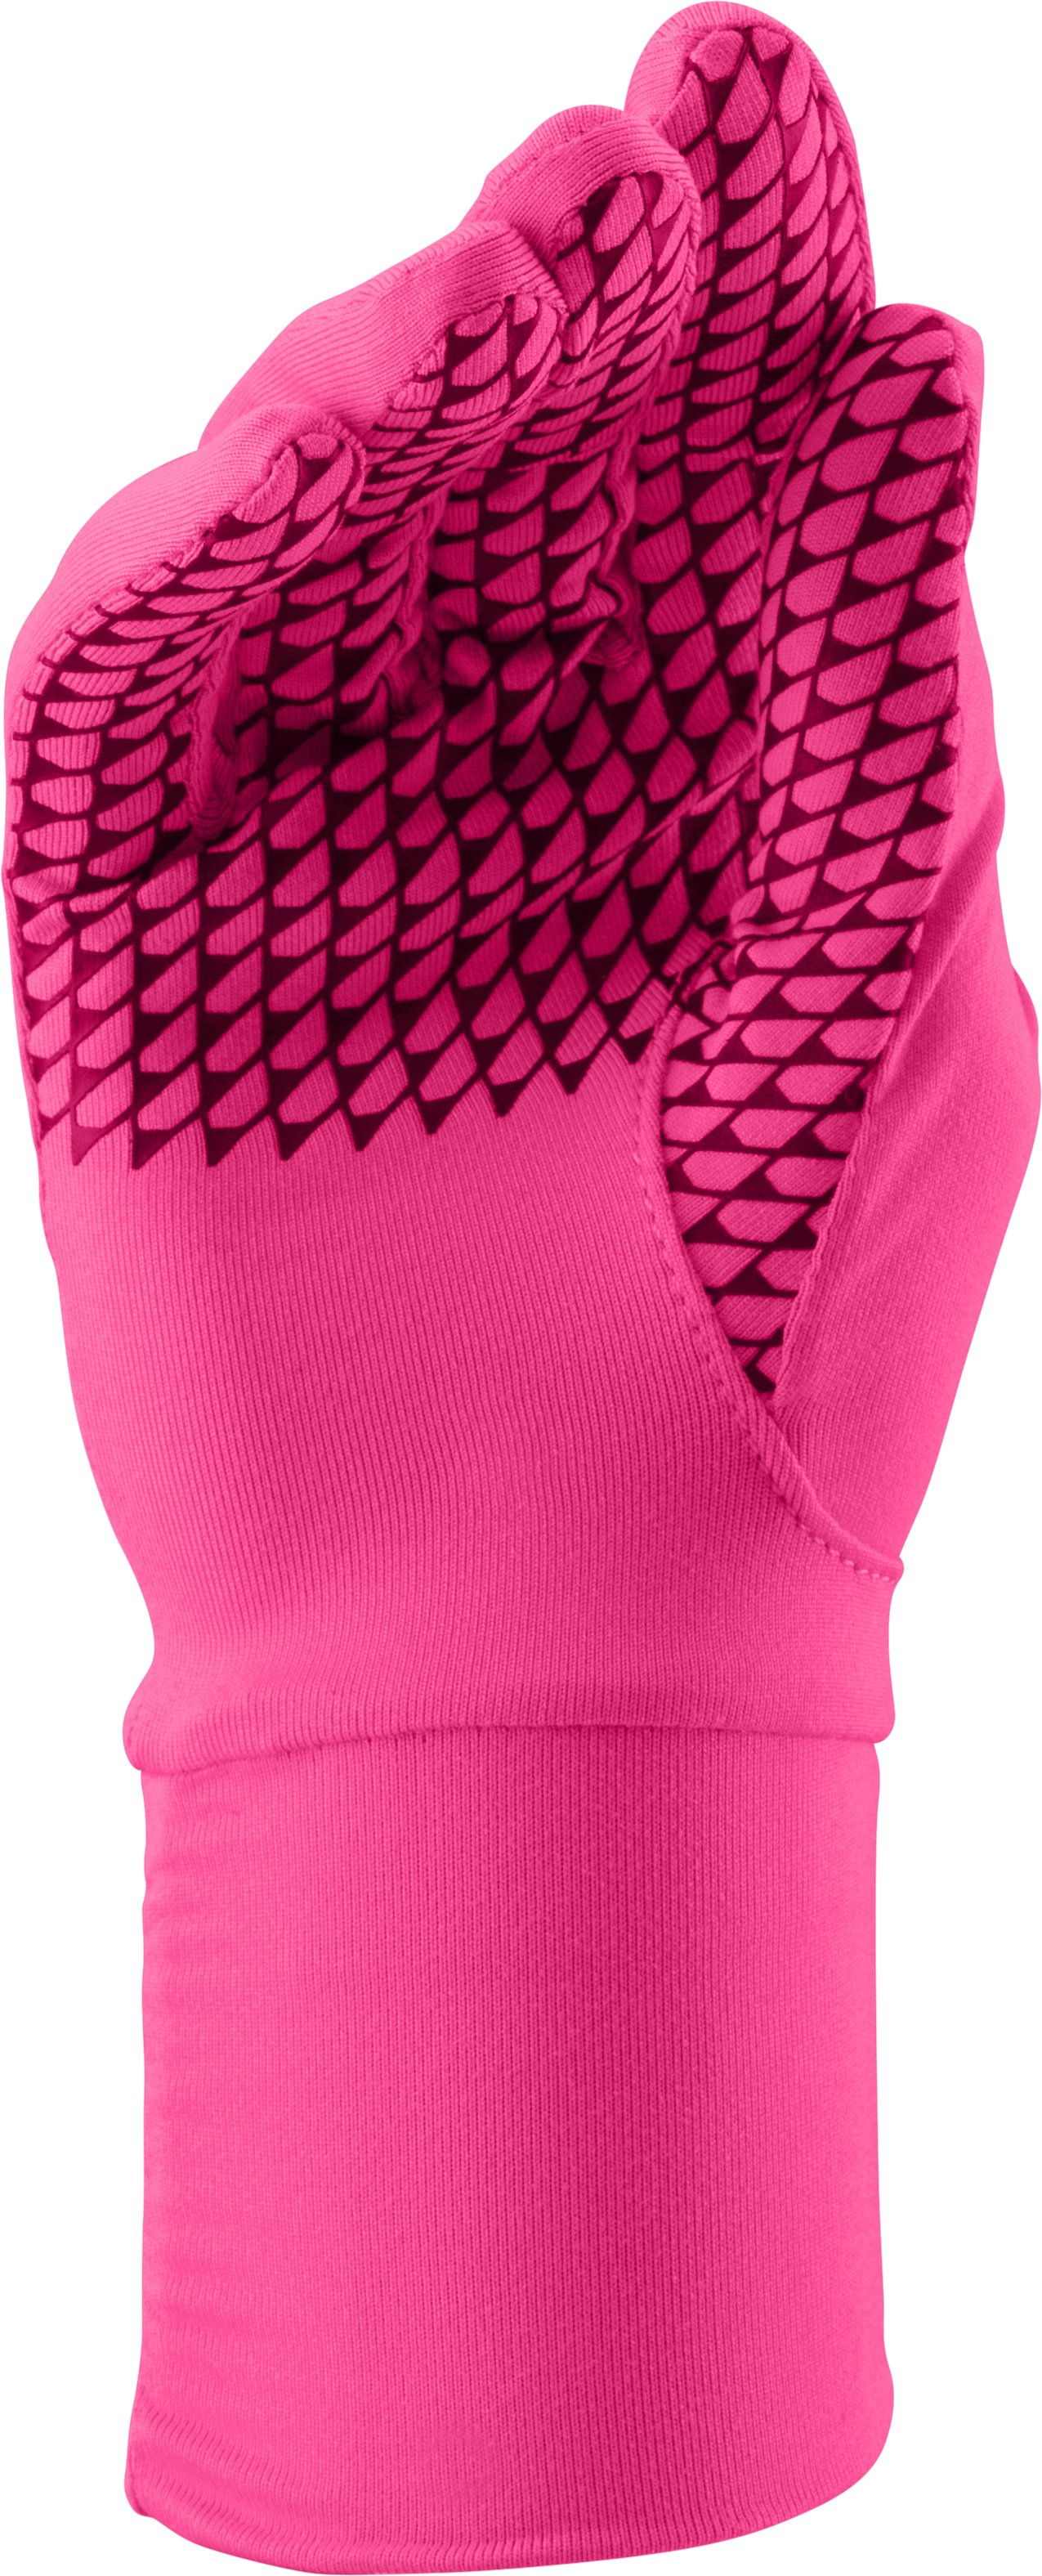 Women's UA Layered Up! Liner Glove, REBEL PINK